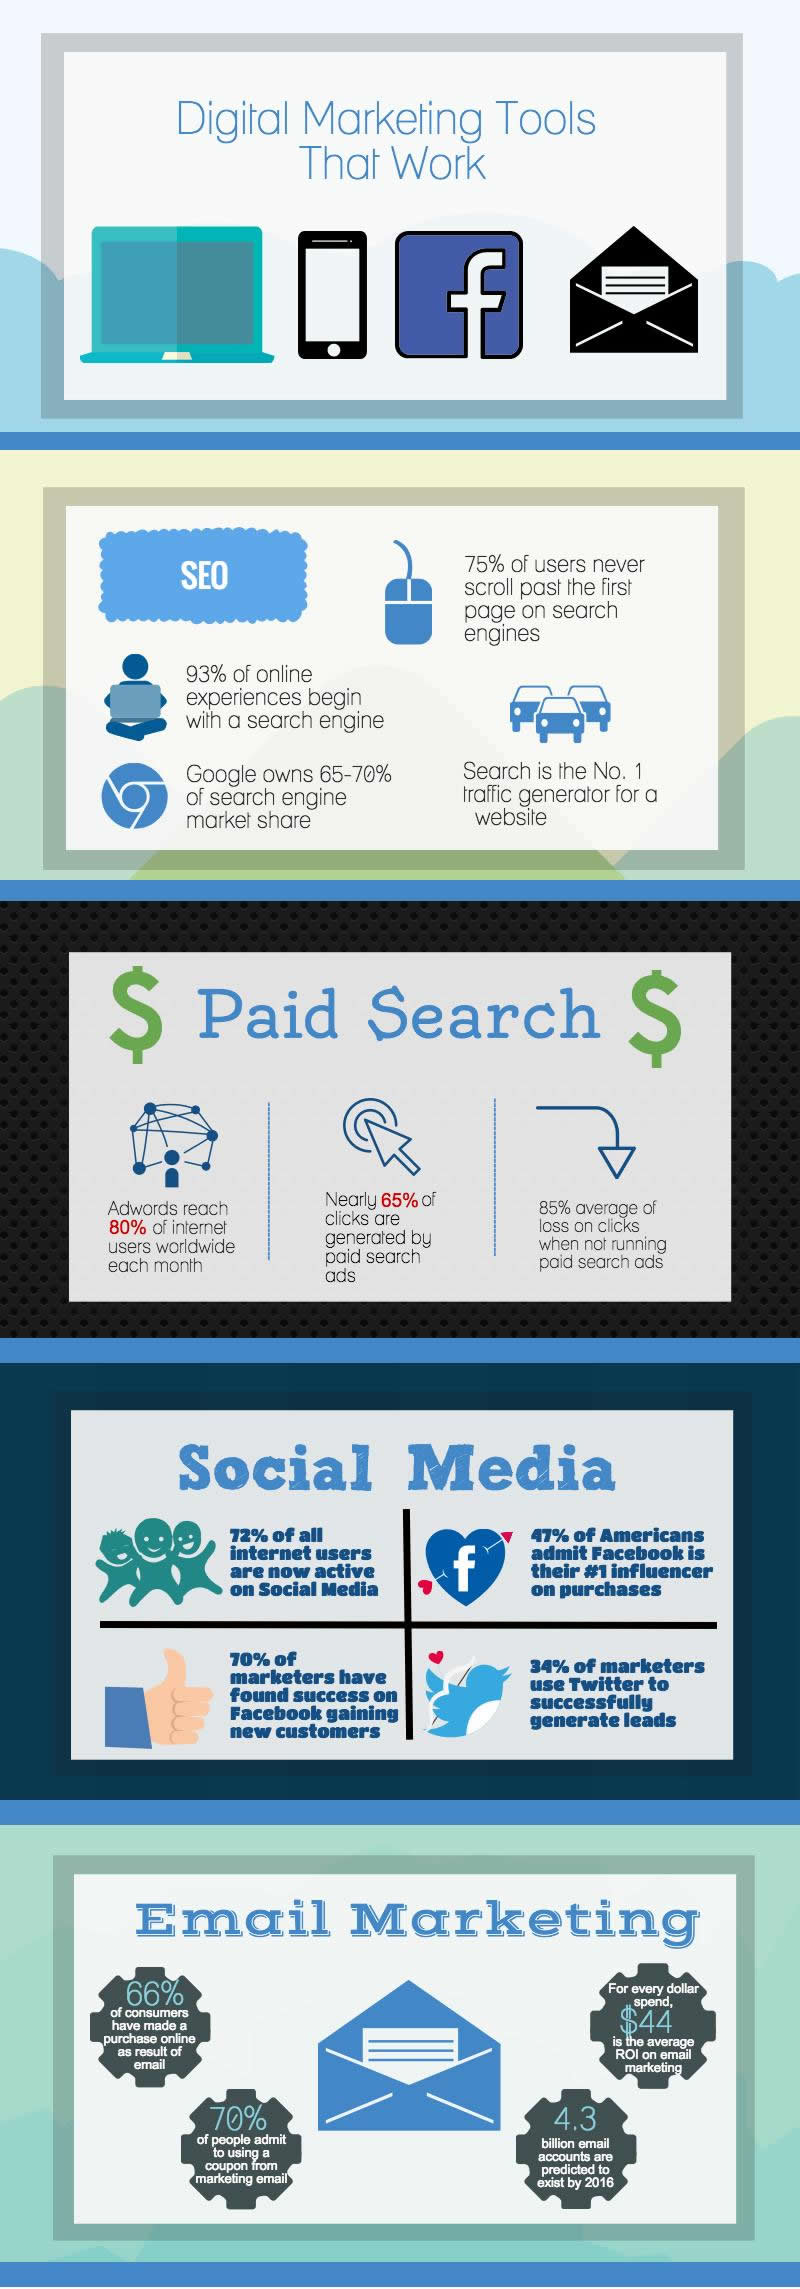 Digital Marketing Tools That Work [Infographic]